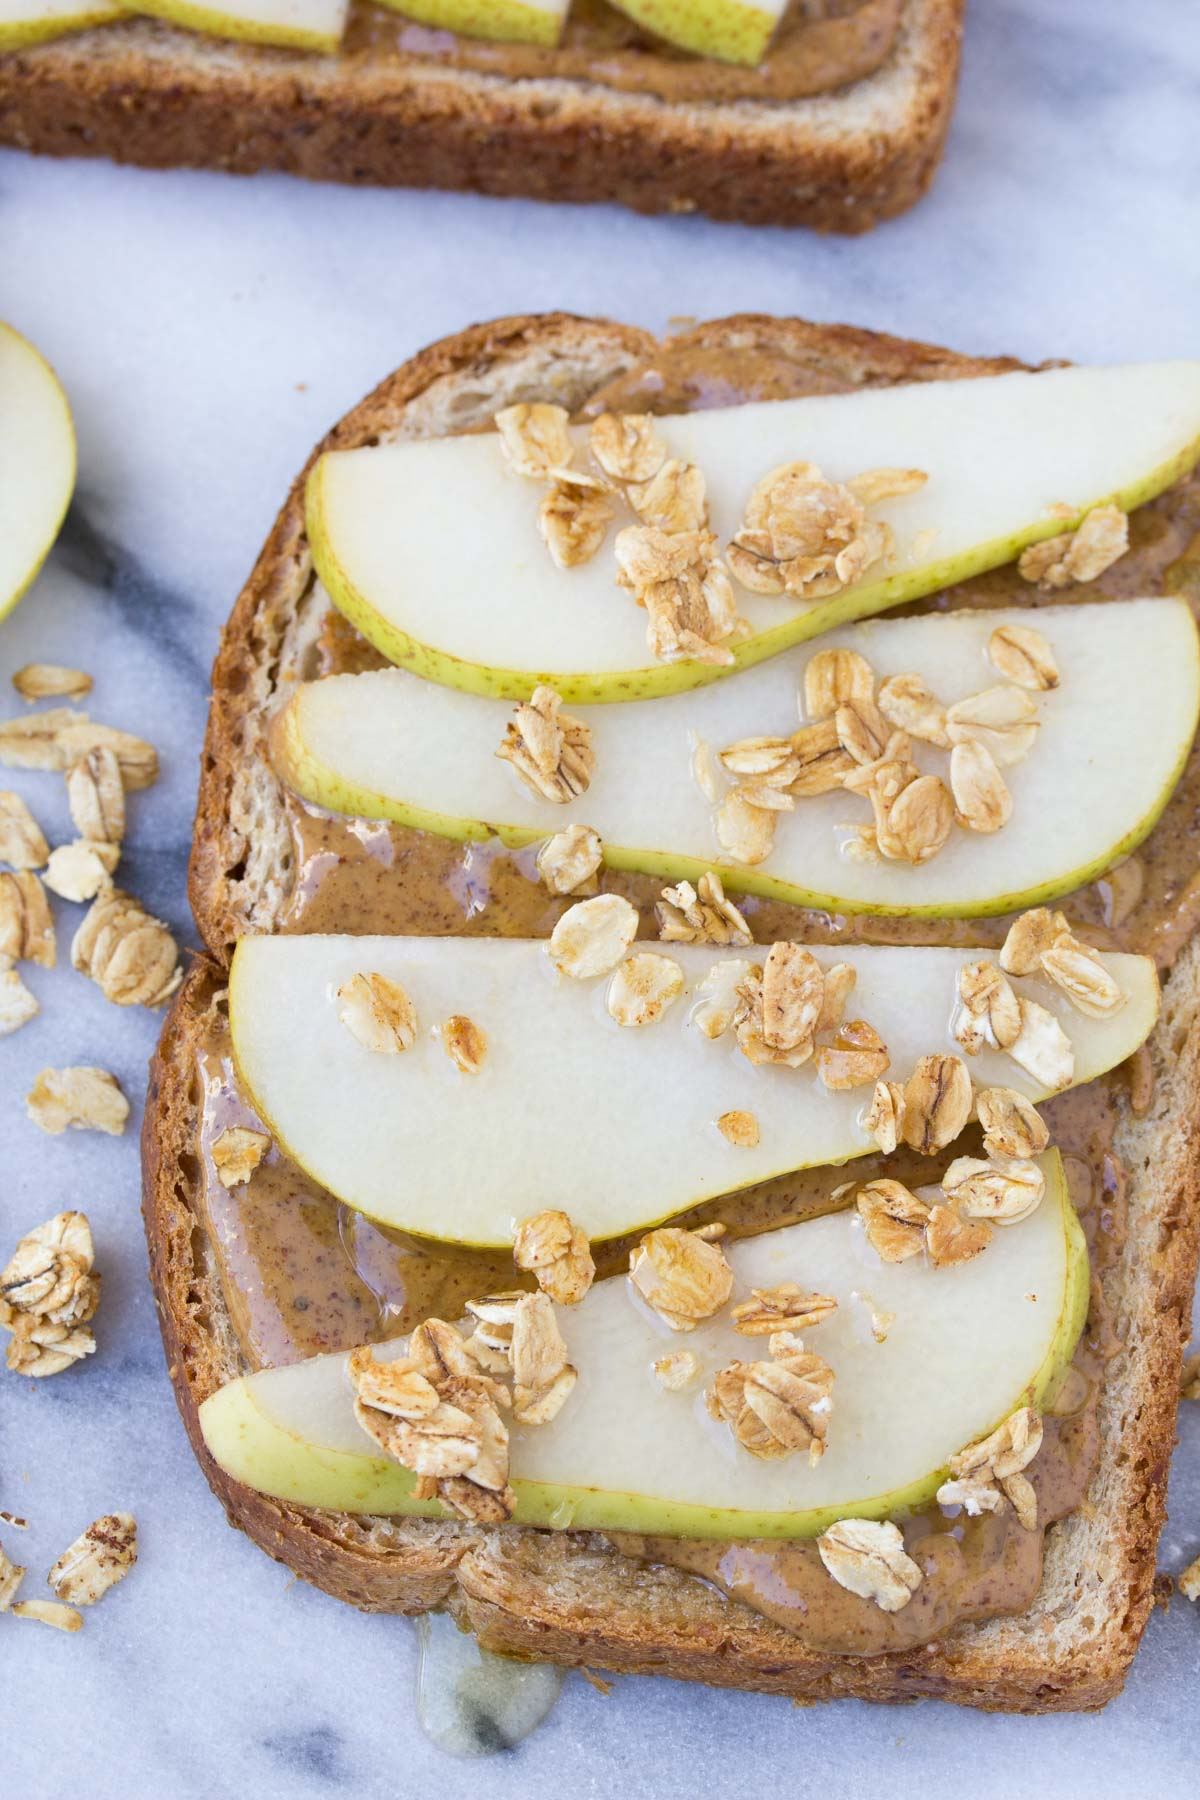 This healthy pear and almond butter toast with granola and honey makes an easy breakfast or snack! | www.kristineskitchenblog.com